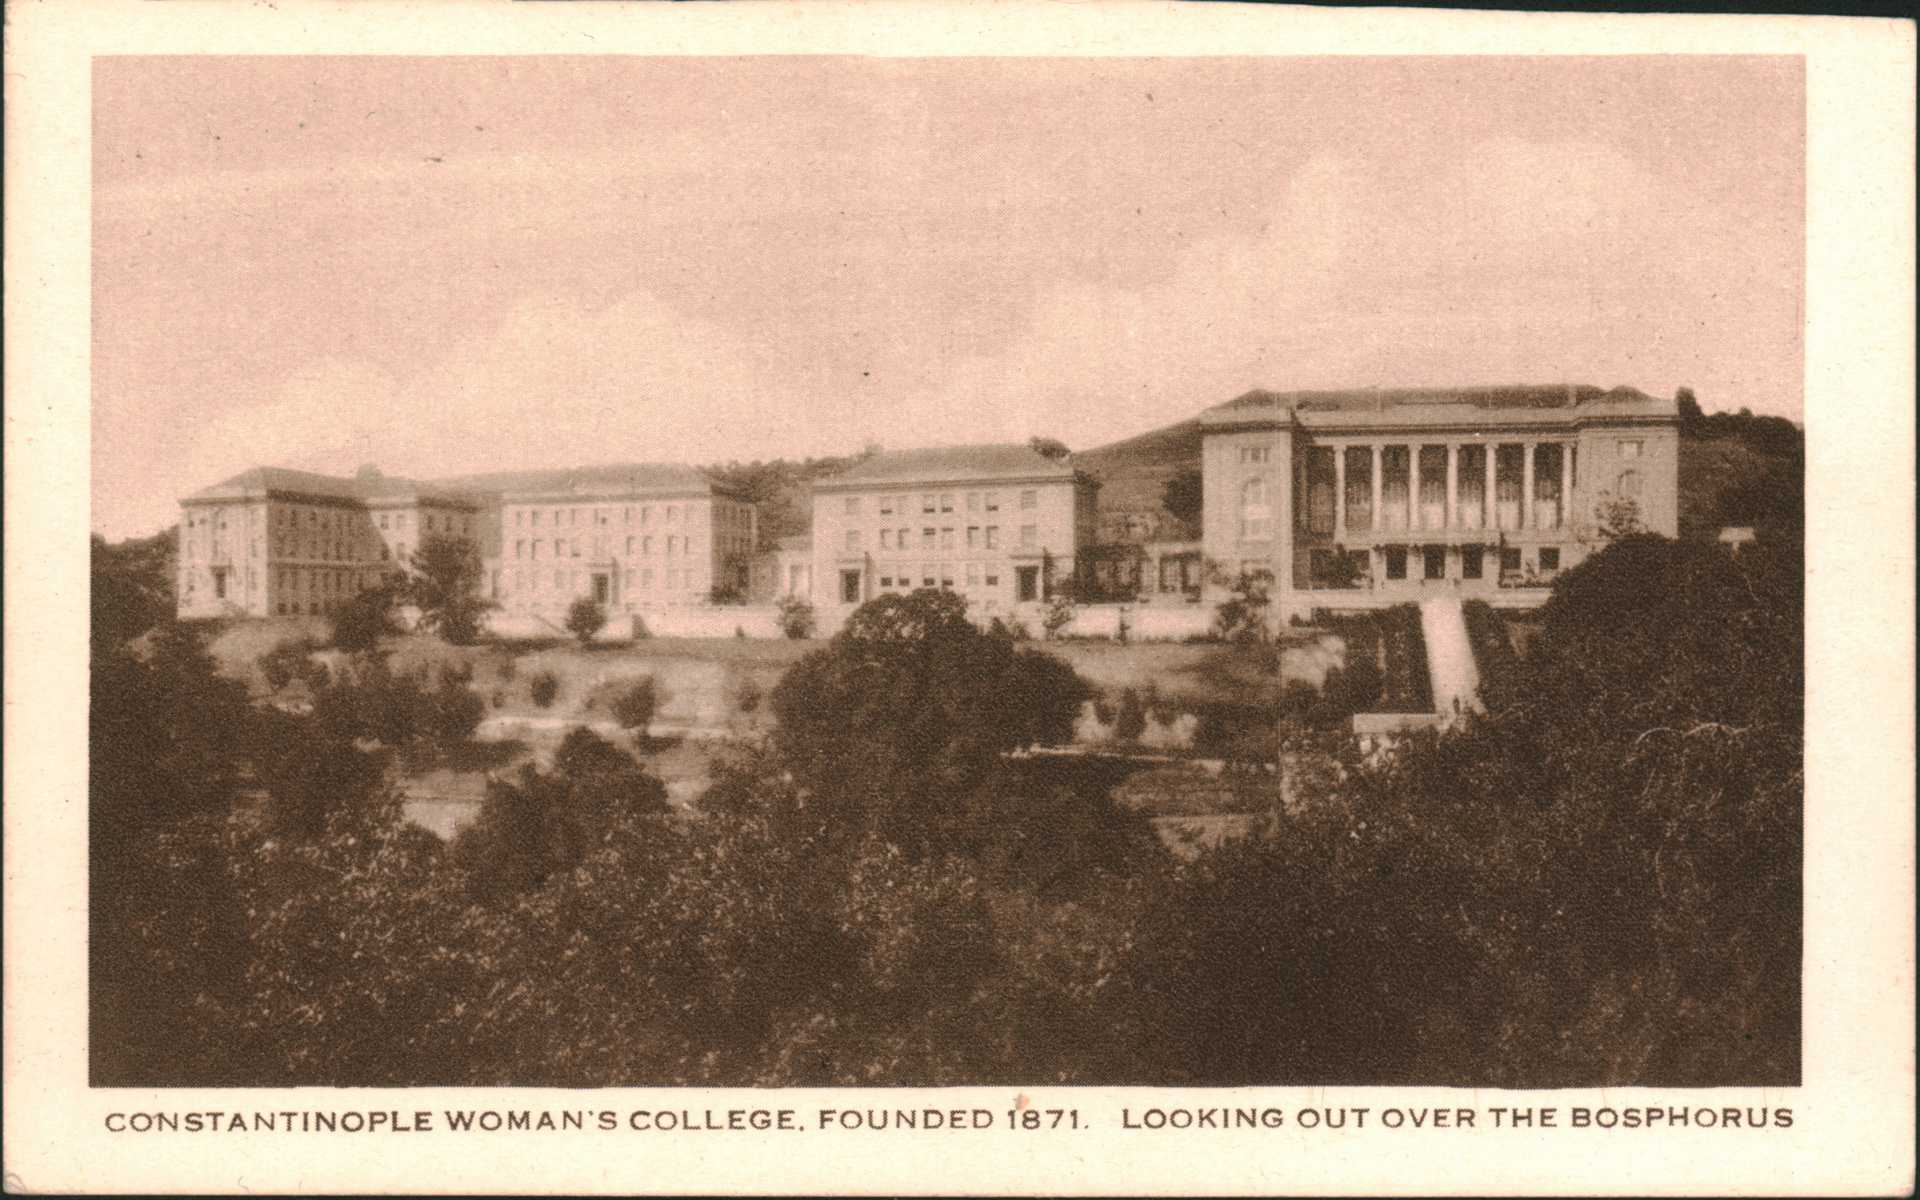 Constantinople Woman's College.Founded 1871. Looking Out Over The Bosphorus